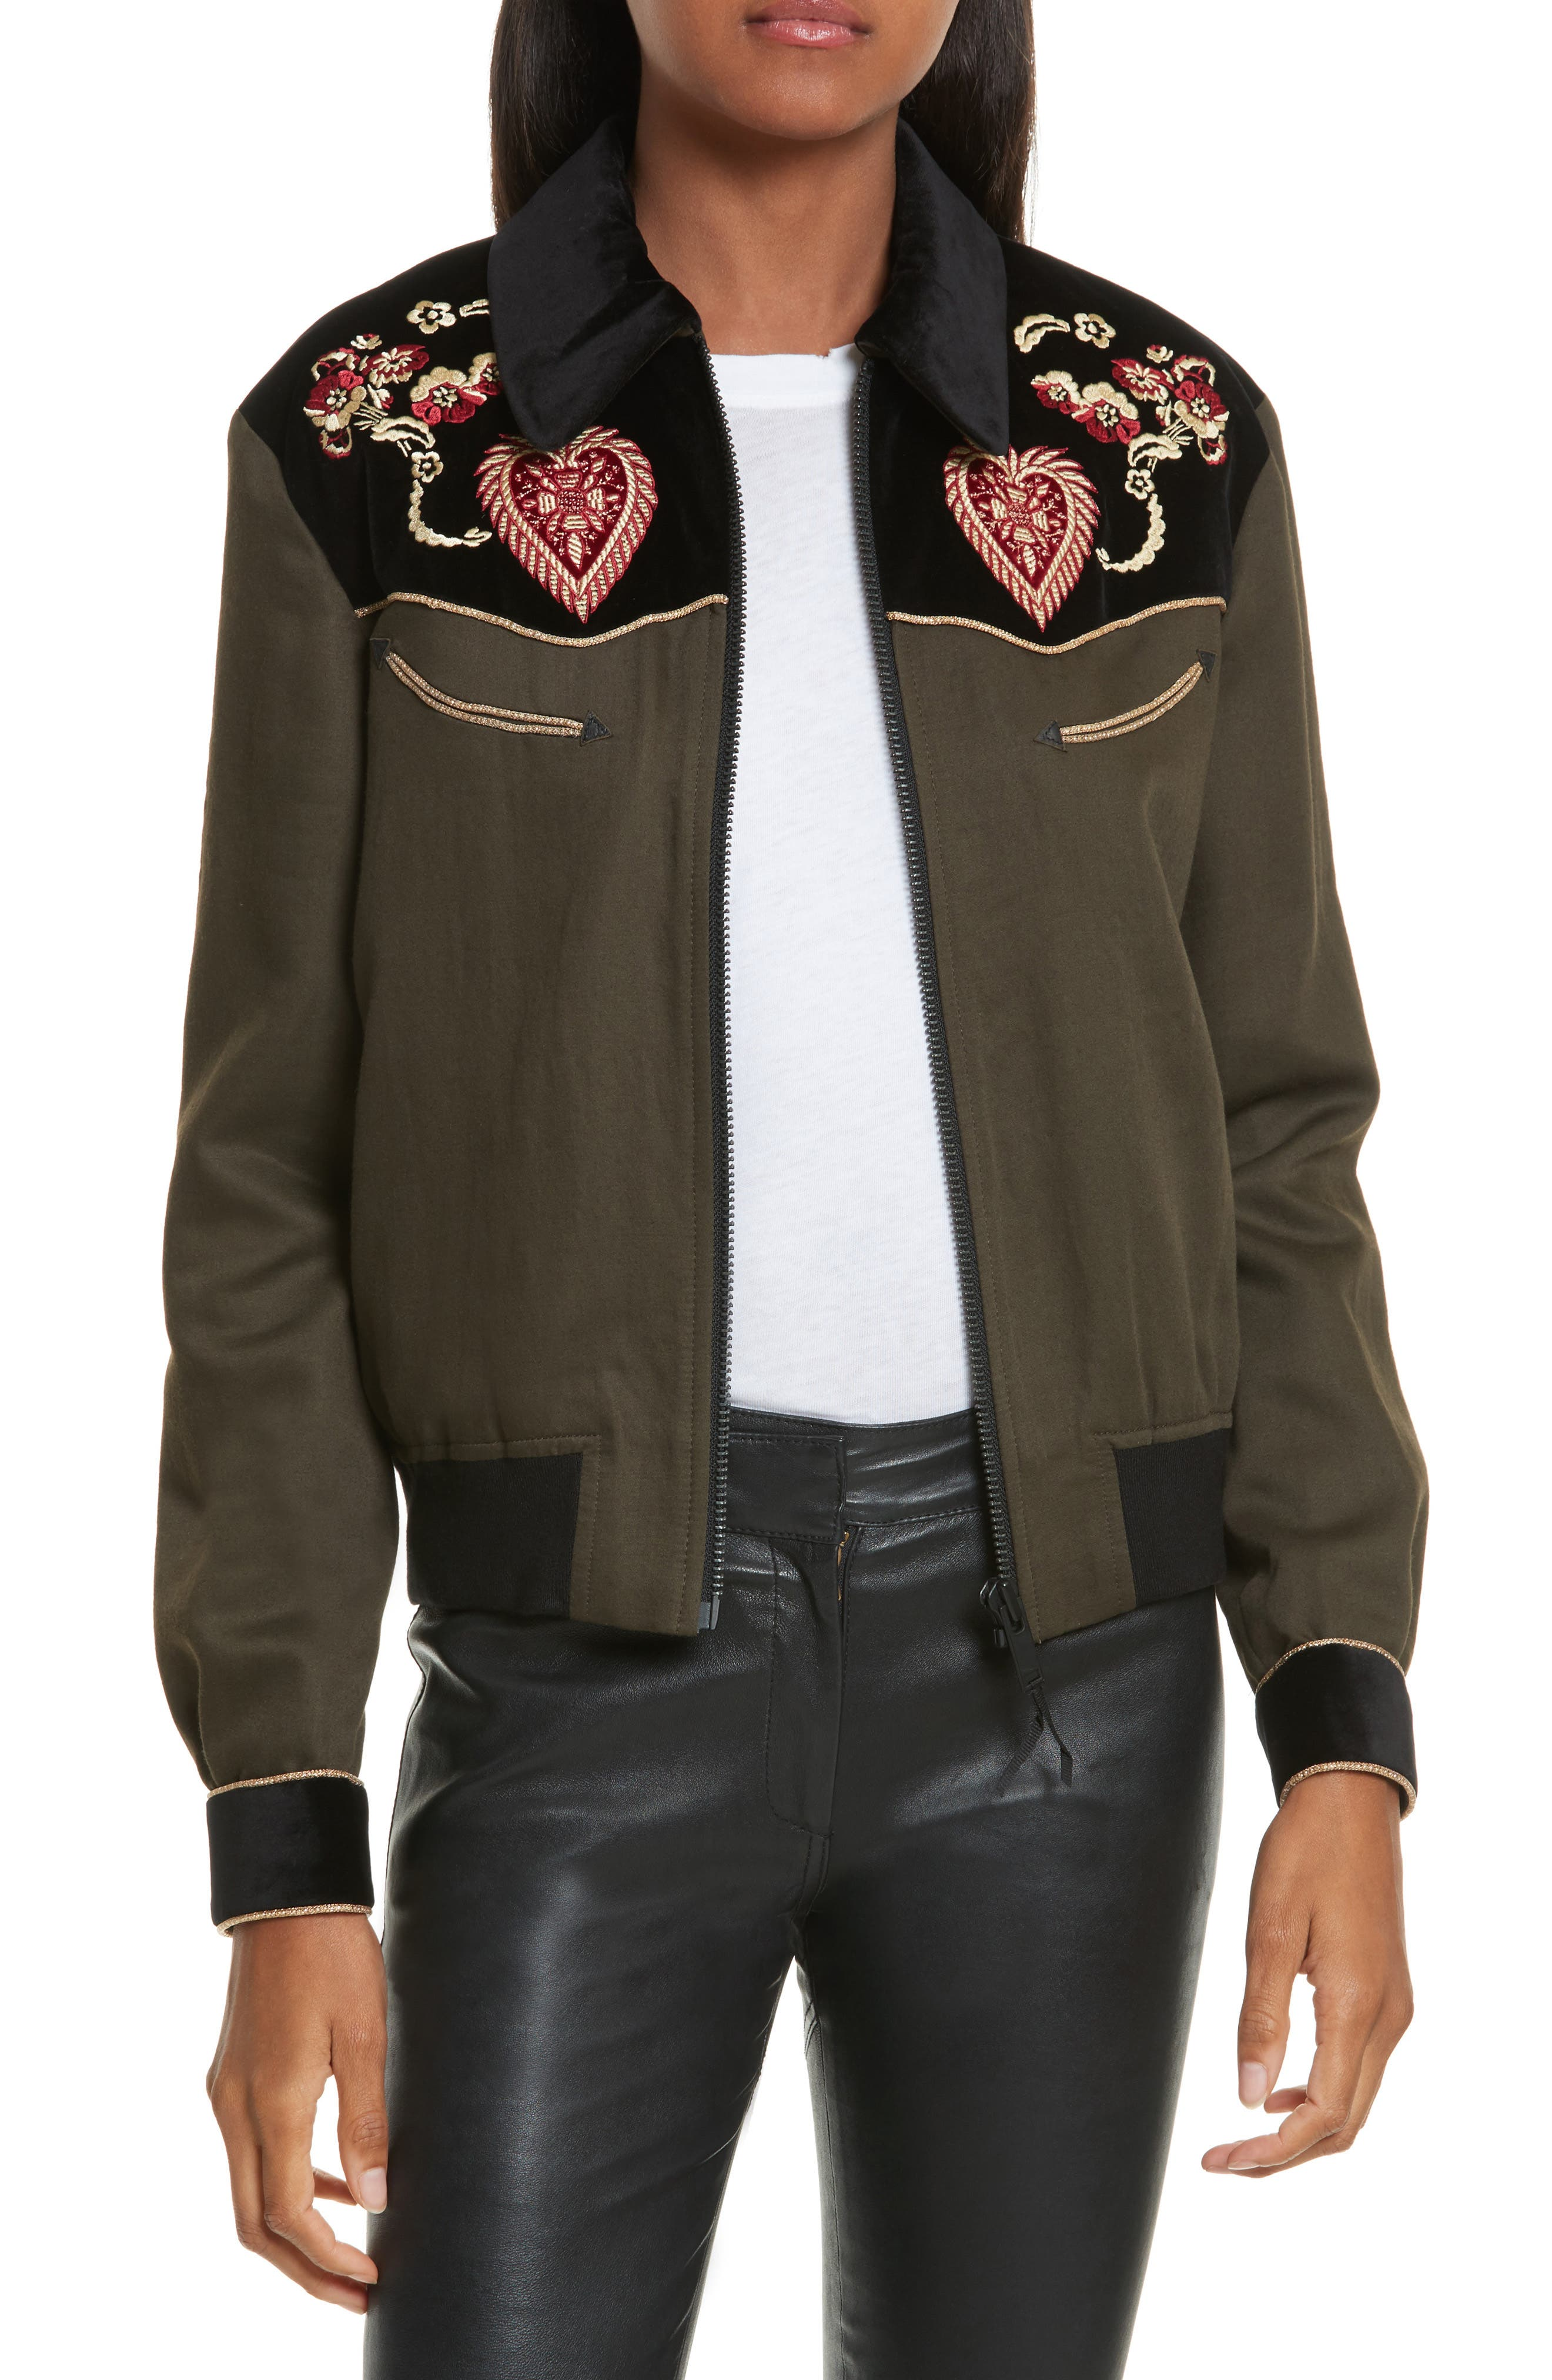 Main Image - The Kooples Contrast Embroidery Bomber Jacket